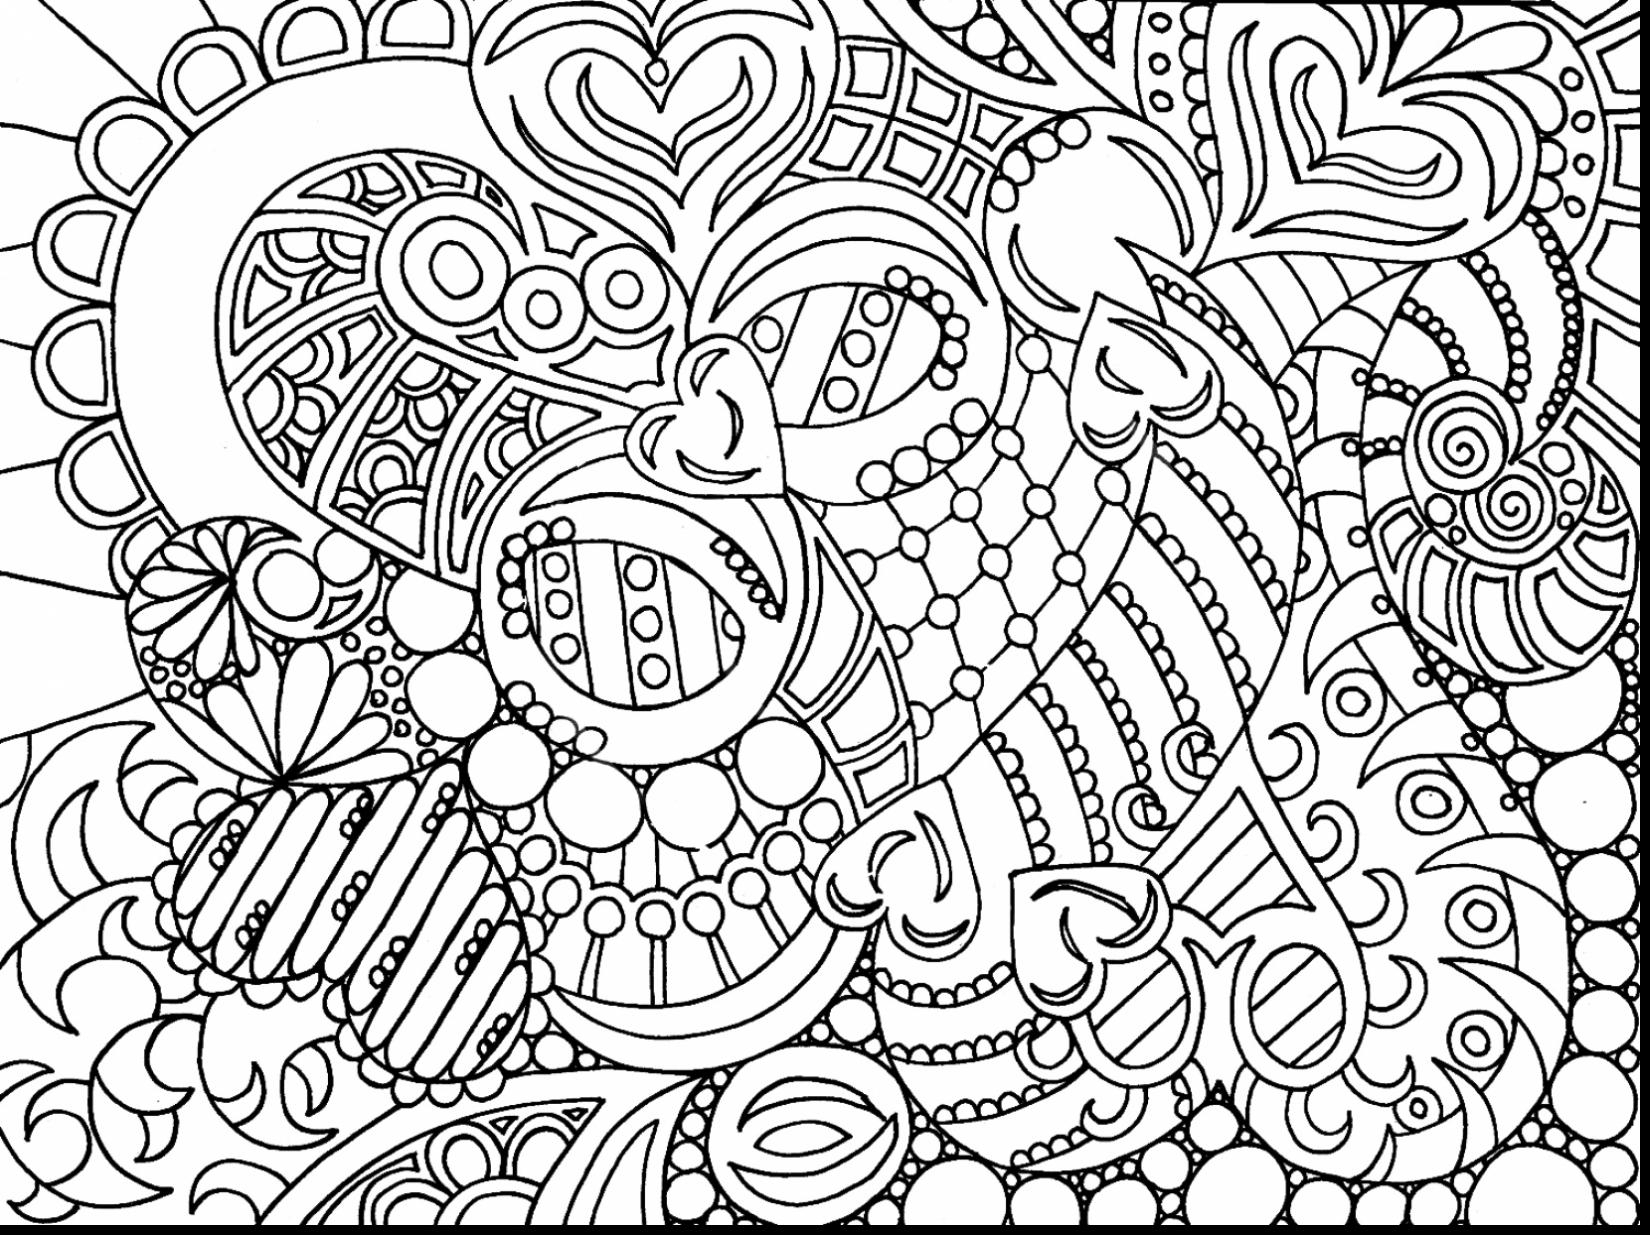 free coloring pages for teens get this teen coloring pages free printable 9466 pages free coloring teens for